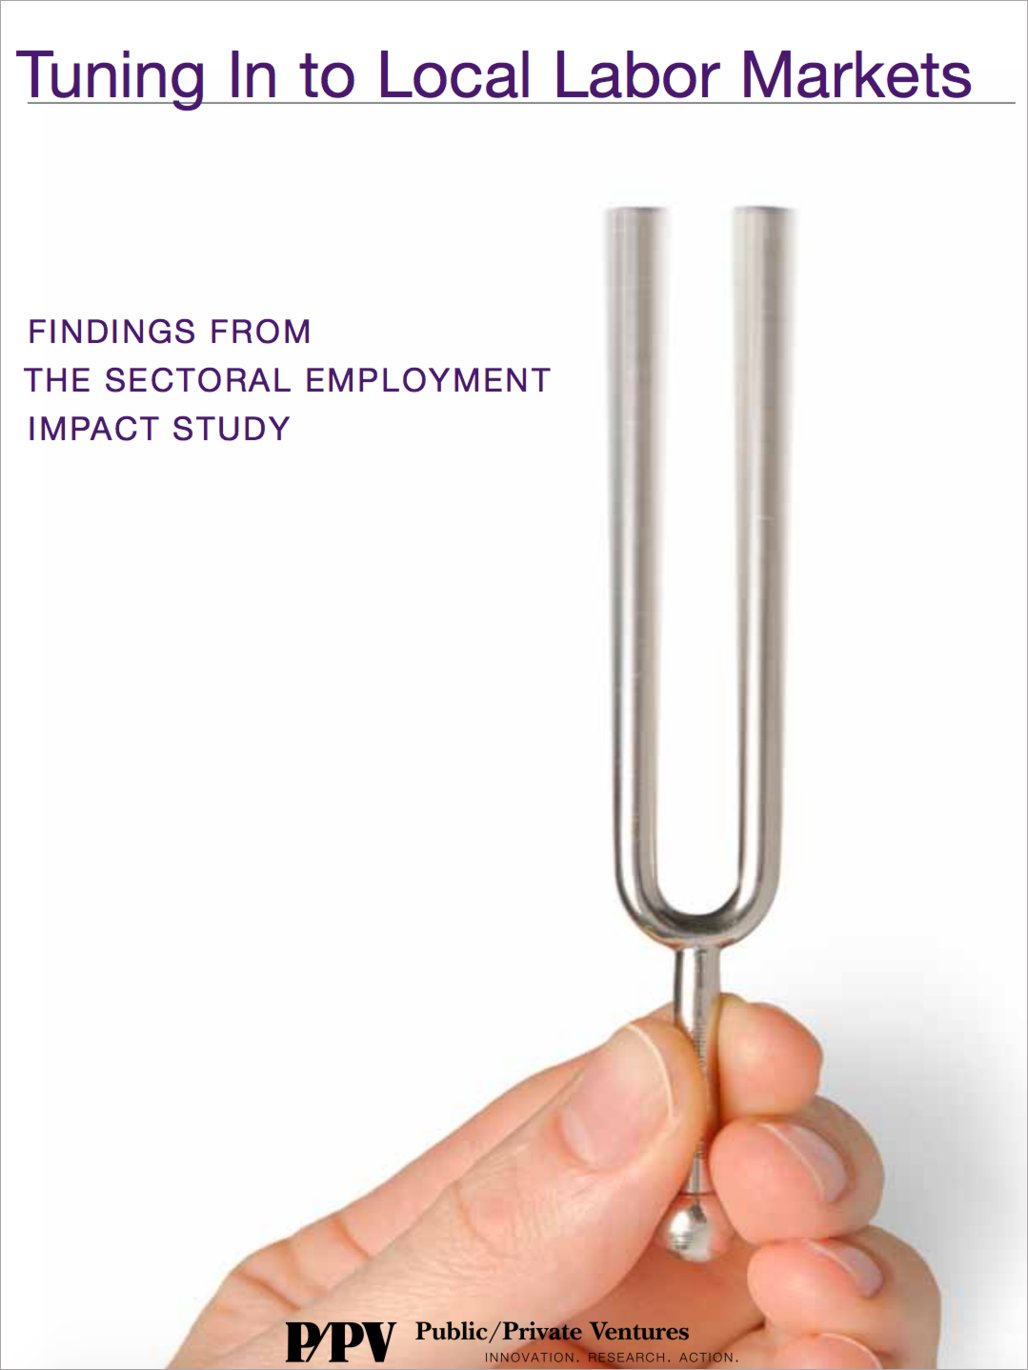 A 2010 report released by Public/Private Ventures. Data from the Sectoral Employment Impact Study inspired early visions of YASEP. Learn more  here .